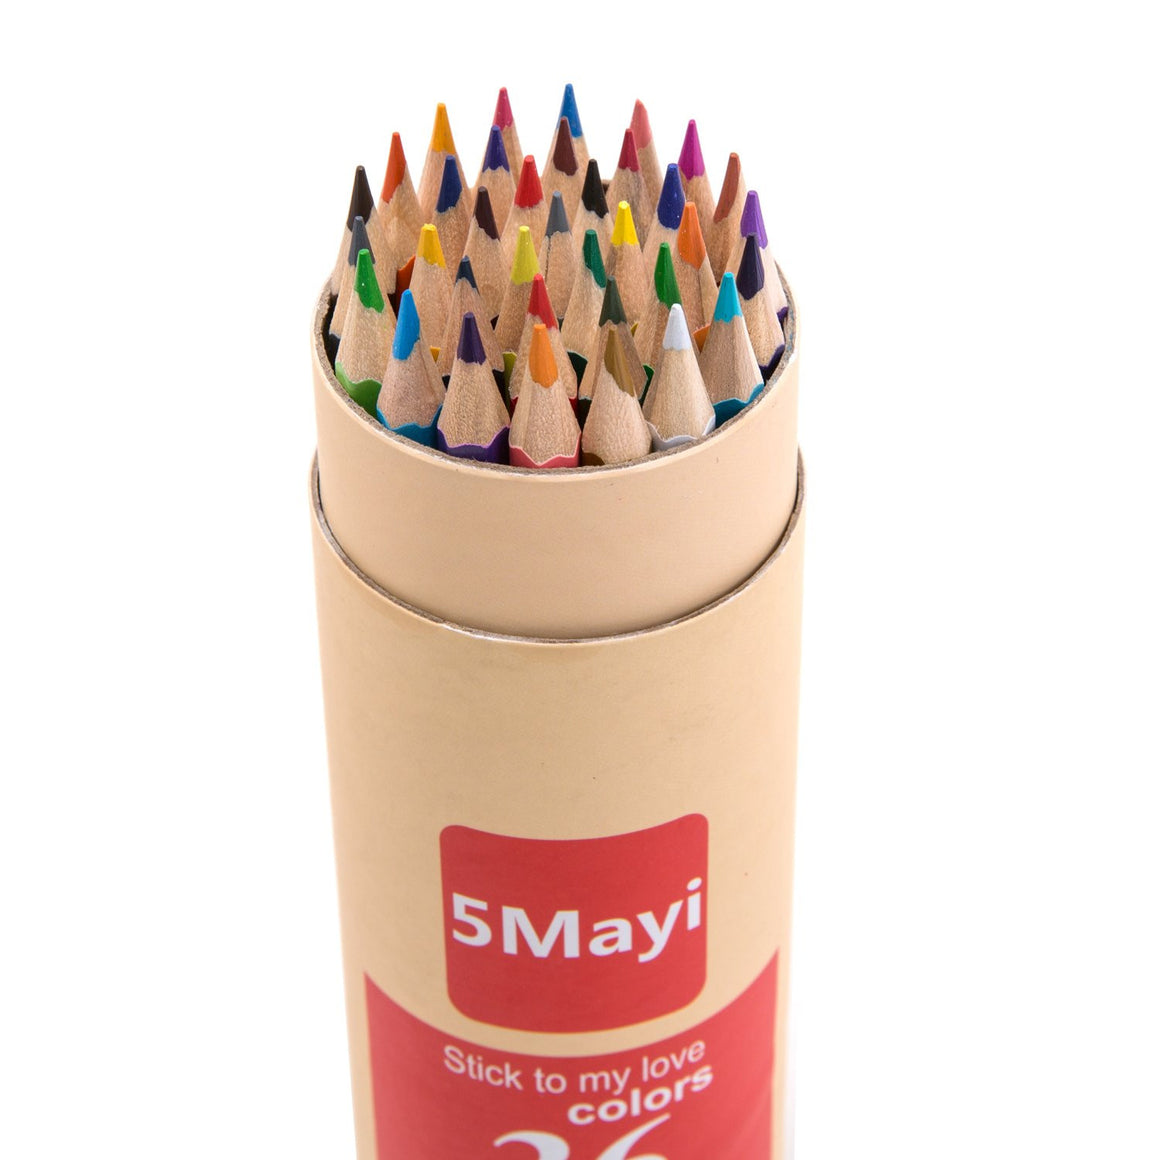 5Mayi Colored Pencils with Sharpener - Set of 24